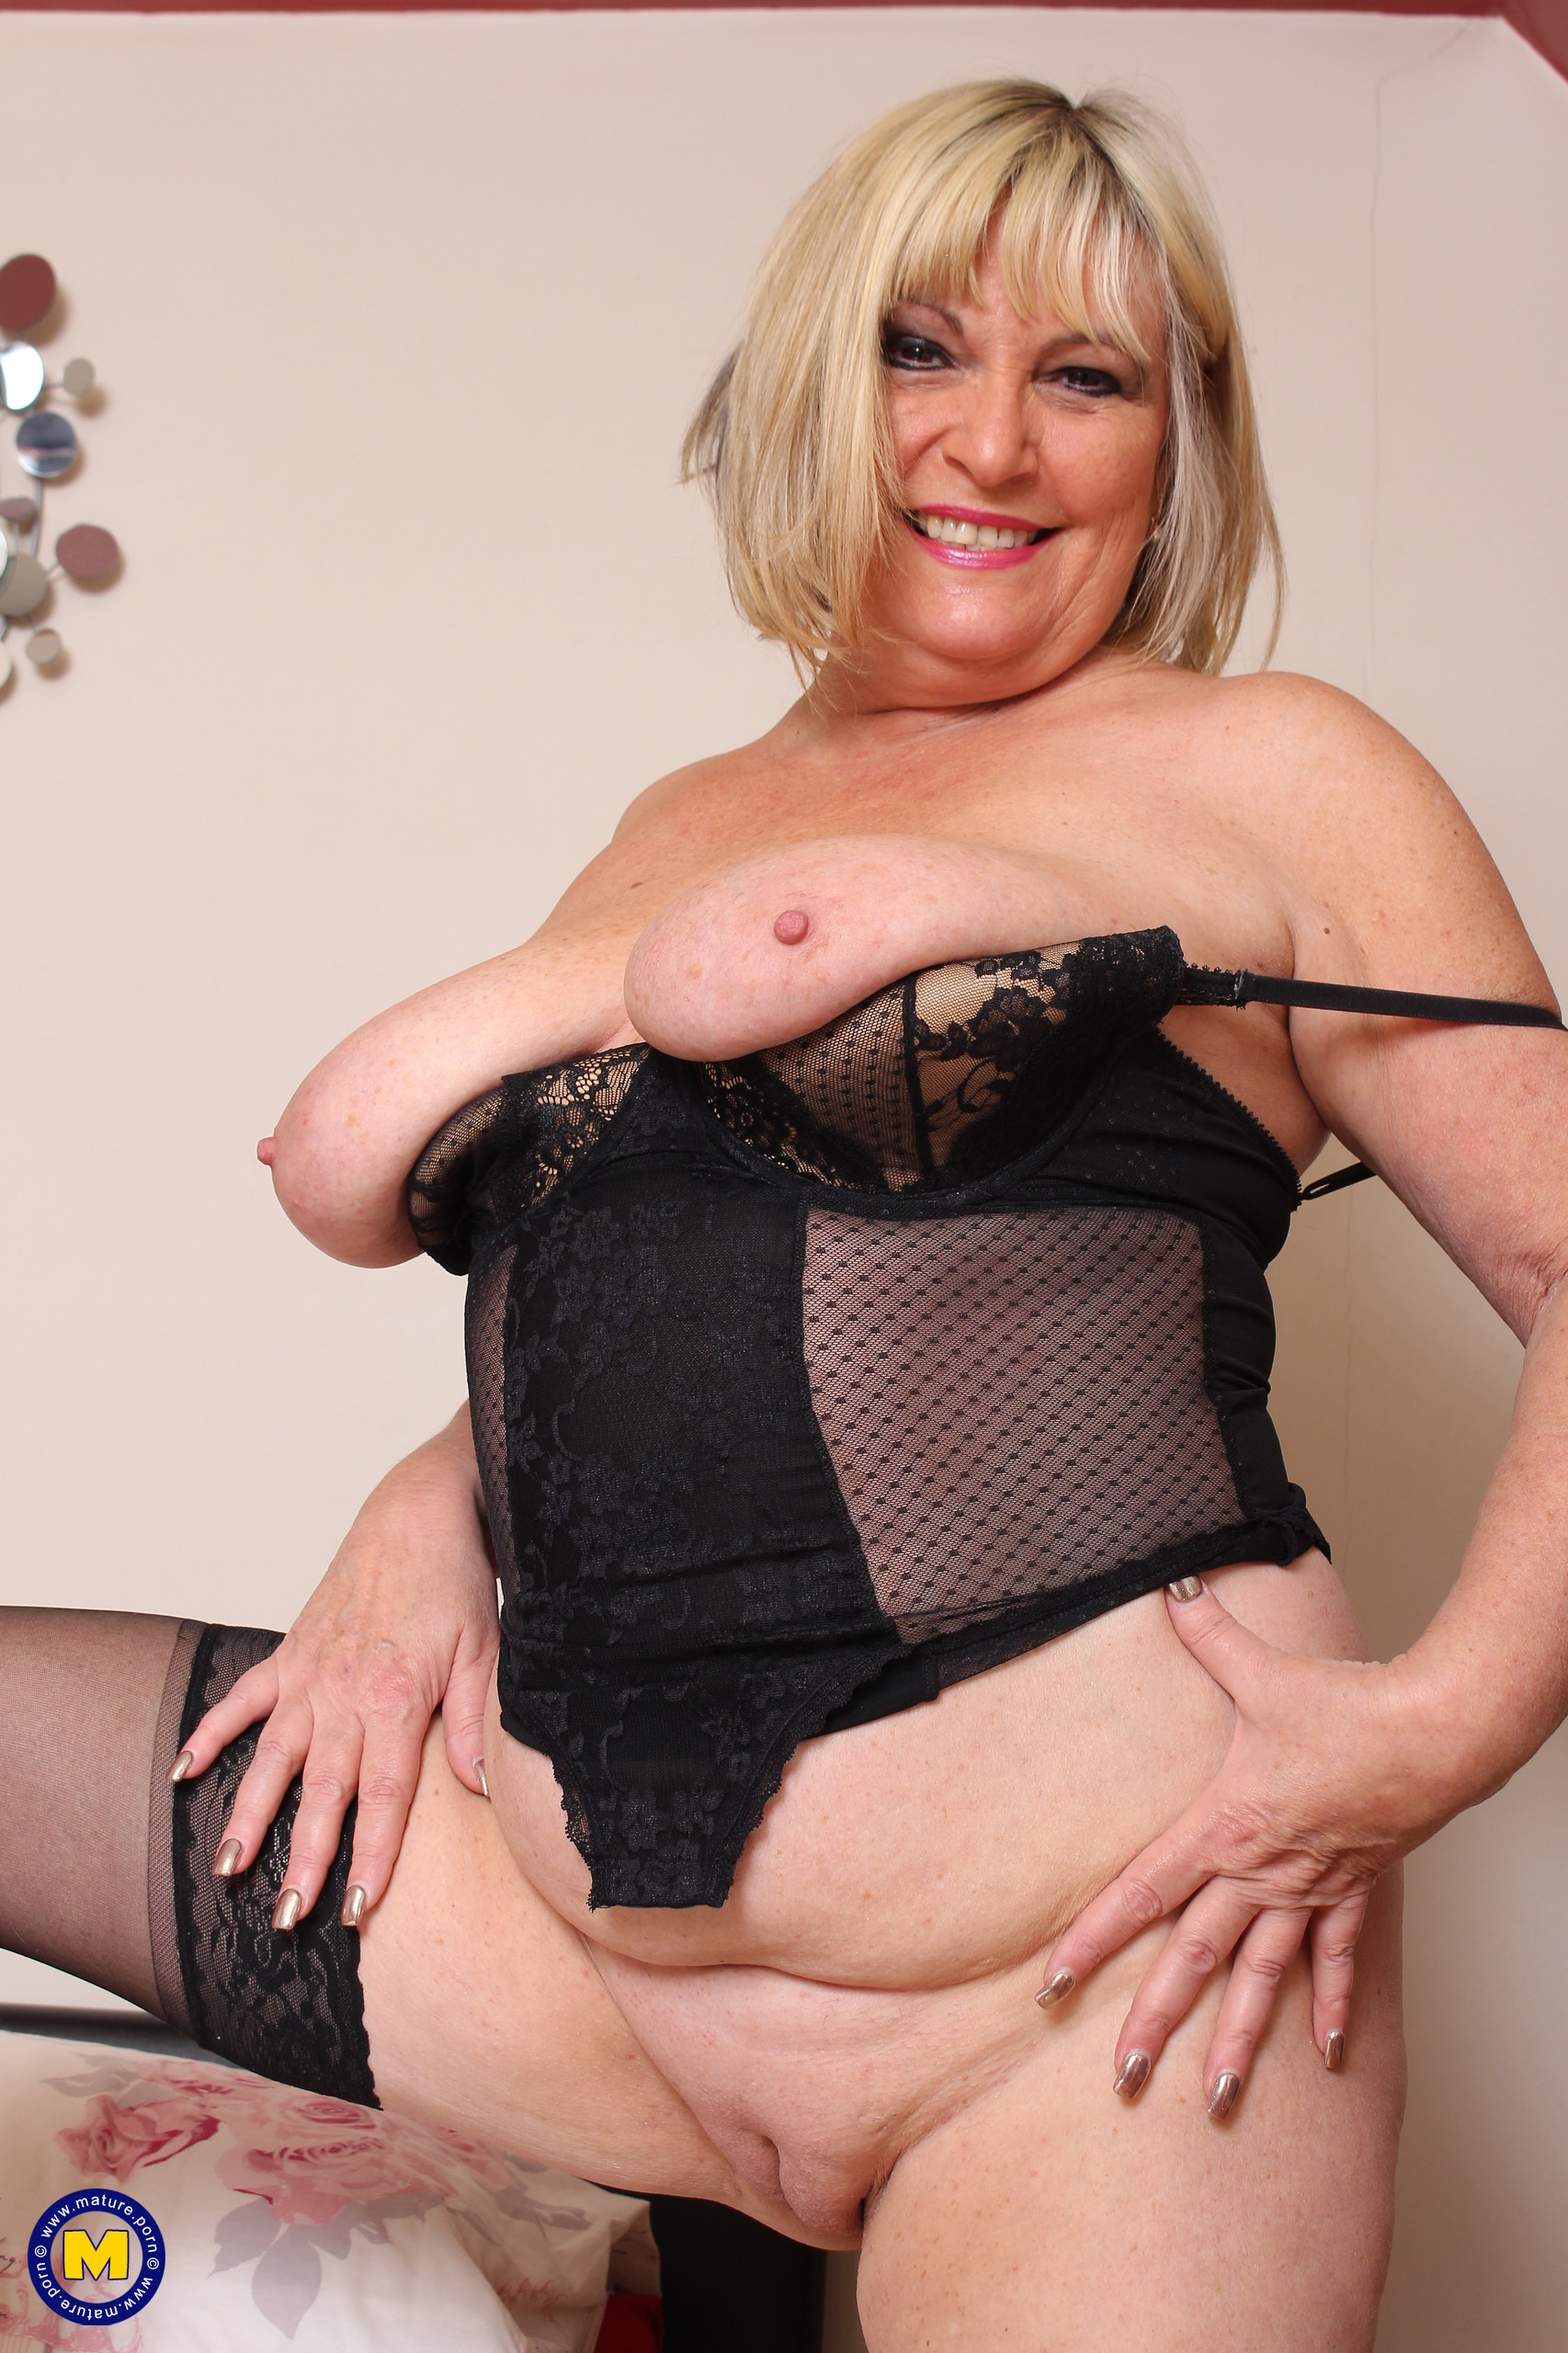 Brit housewife with good jugs toying alone